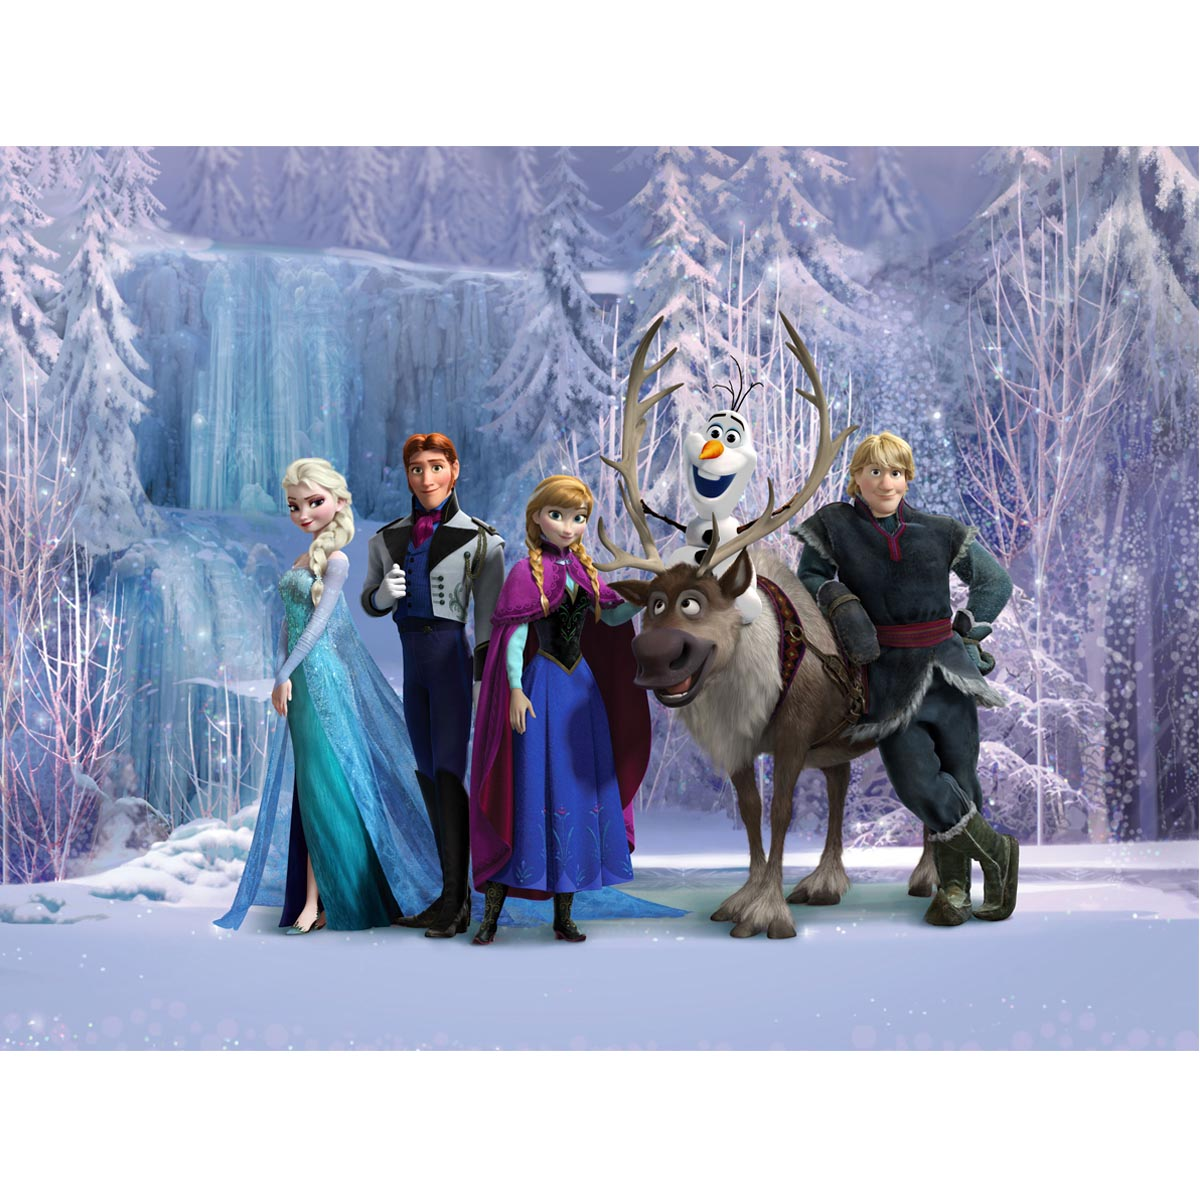 papier peint xxl la reine des neiges disney frozen ebay. Black Bedroom Furniture Sets. Home Design Ideas